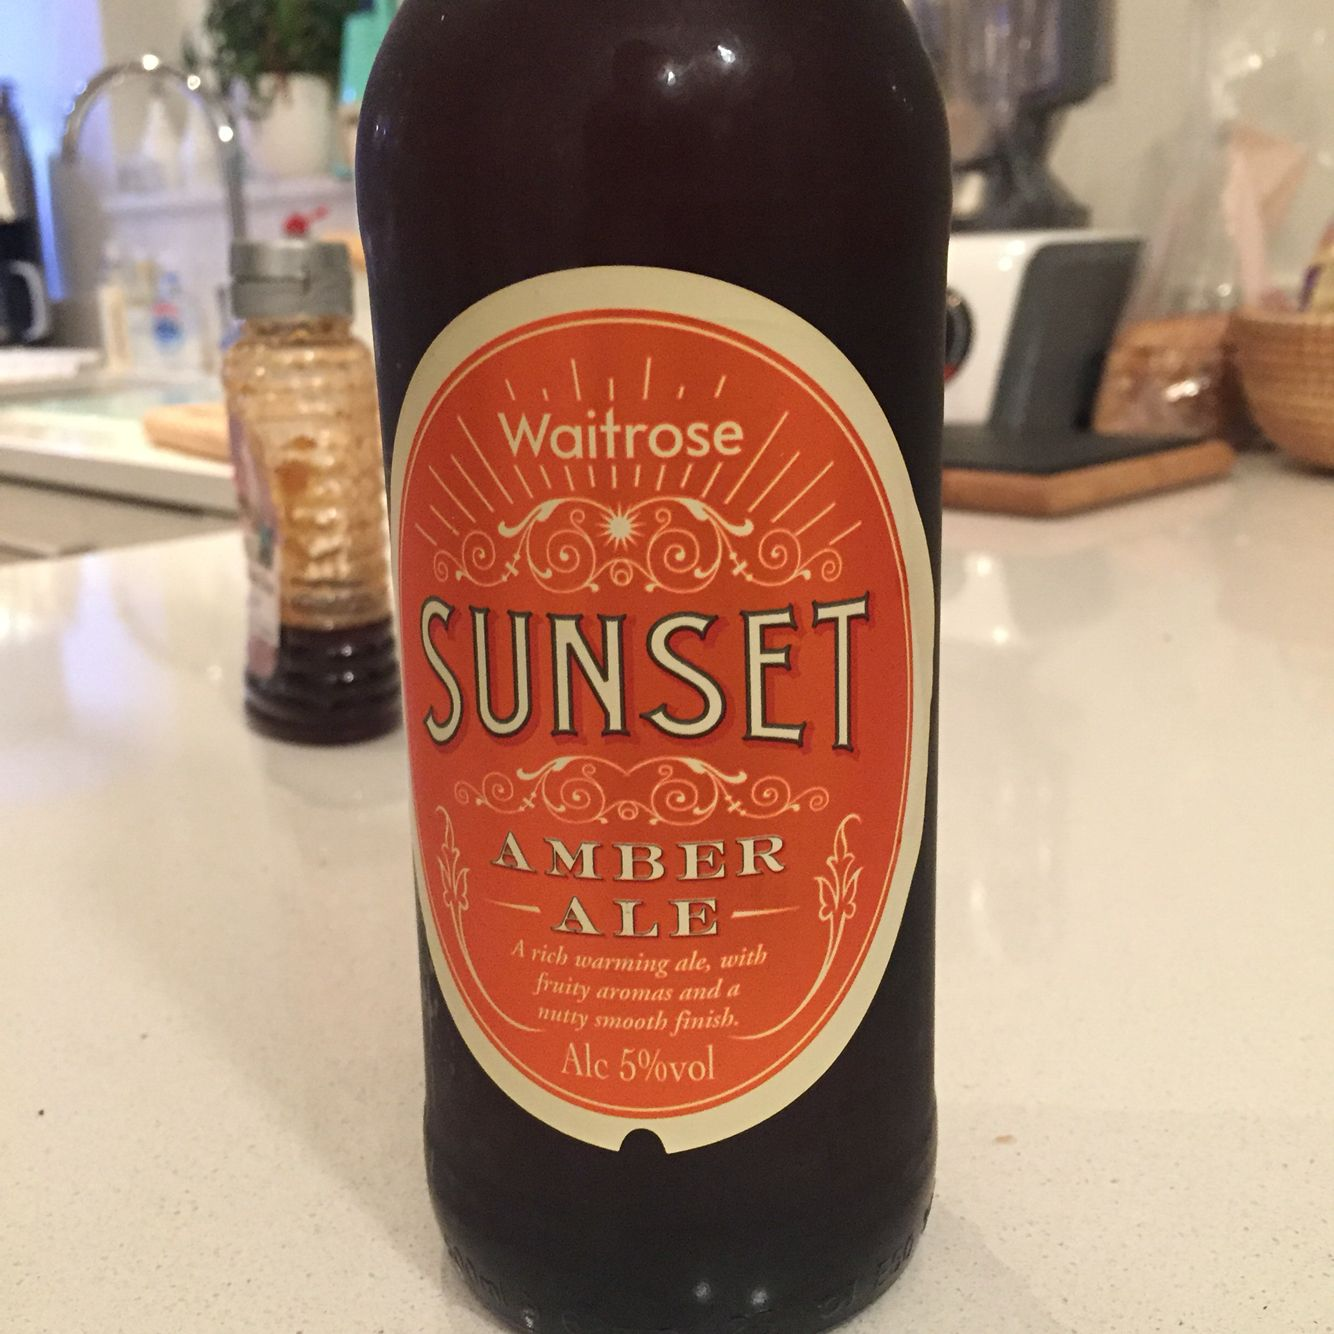 371 Waitrose Sunset Full Fruity Malty Winter Warmer 4 5 16 02 2016 British Beer Soy Sauce Bottle Waitrose